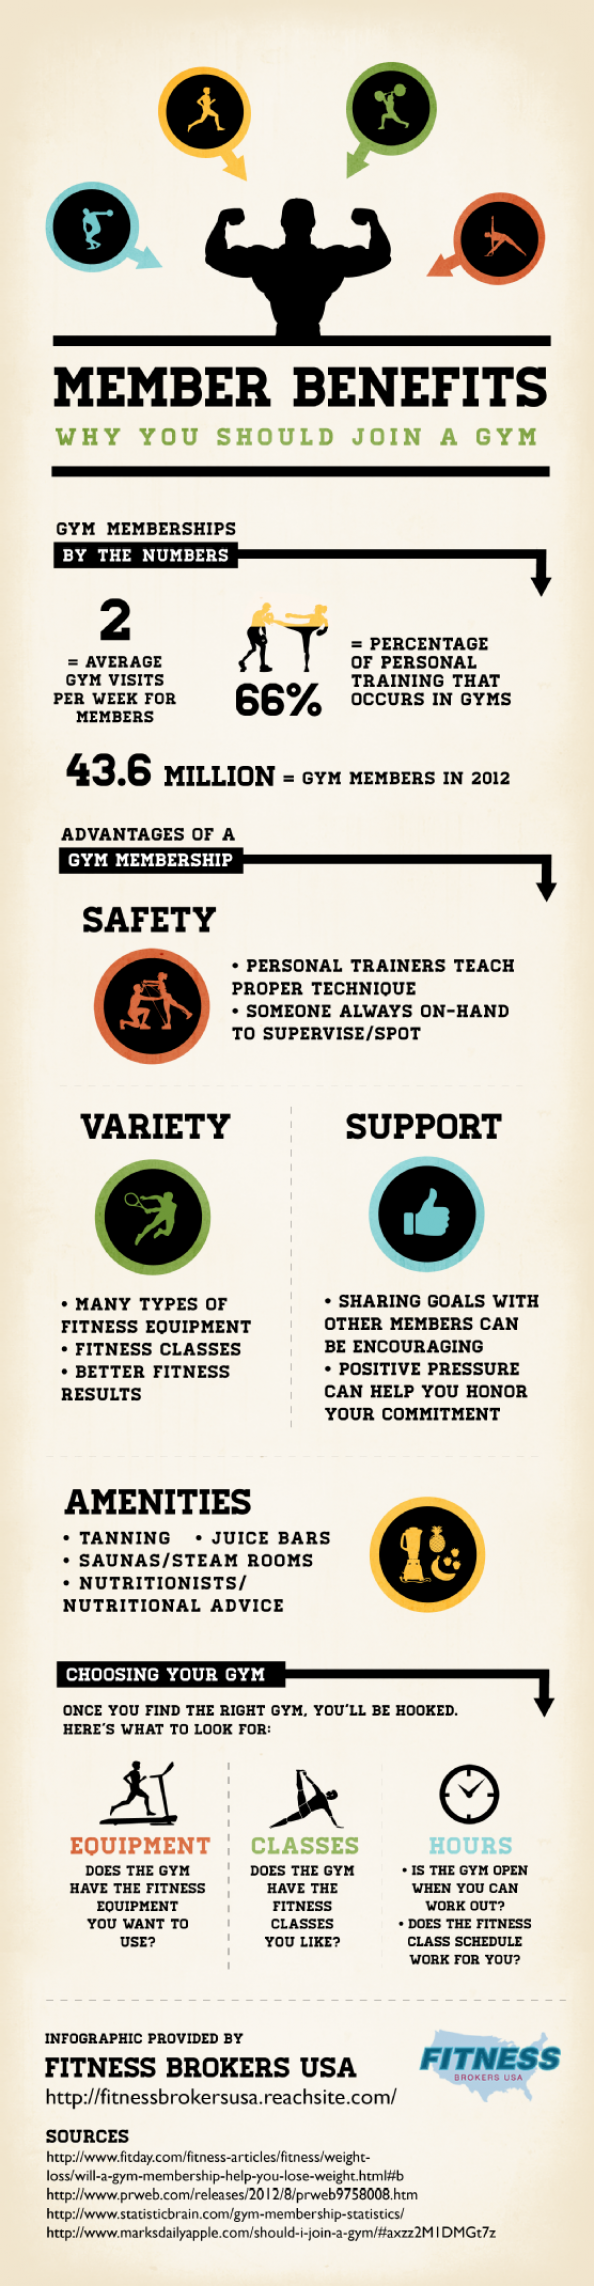 Benefits-of-Joining-A-Gym